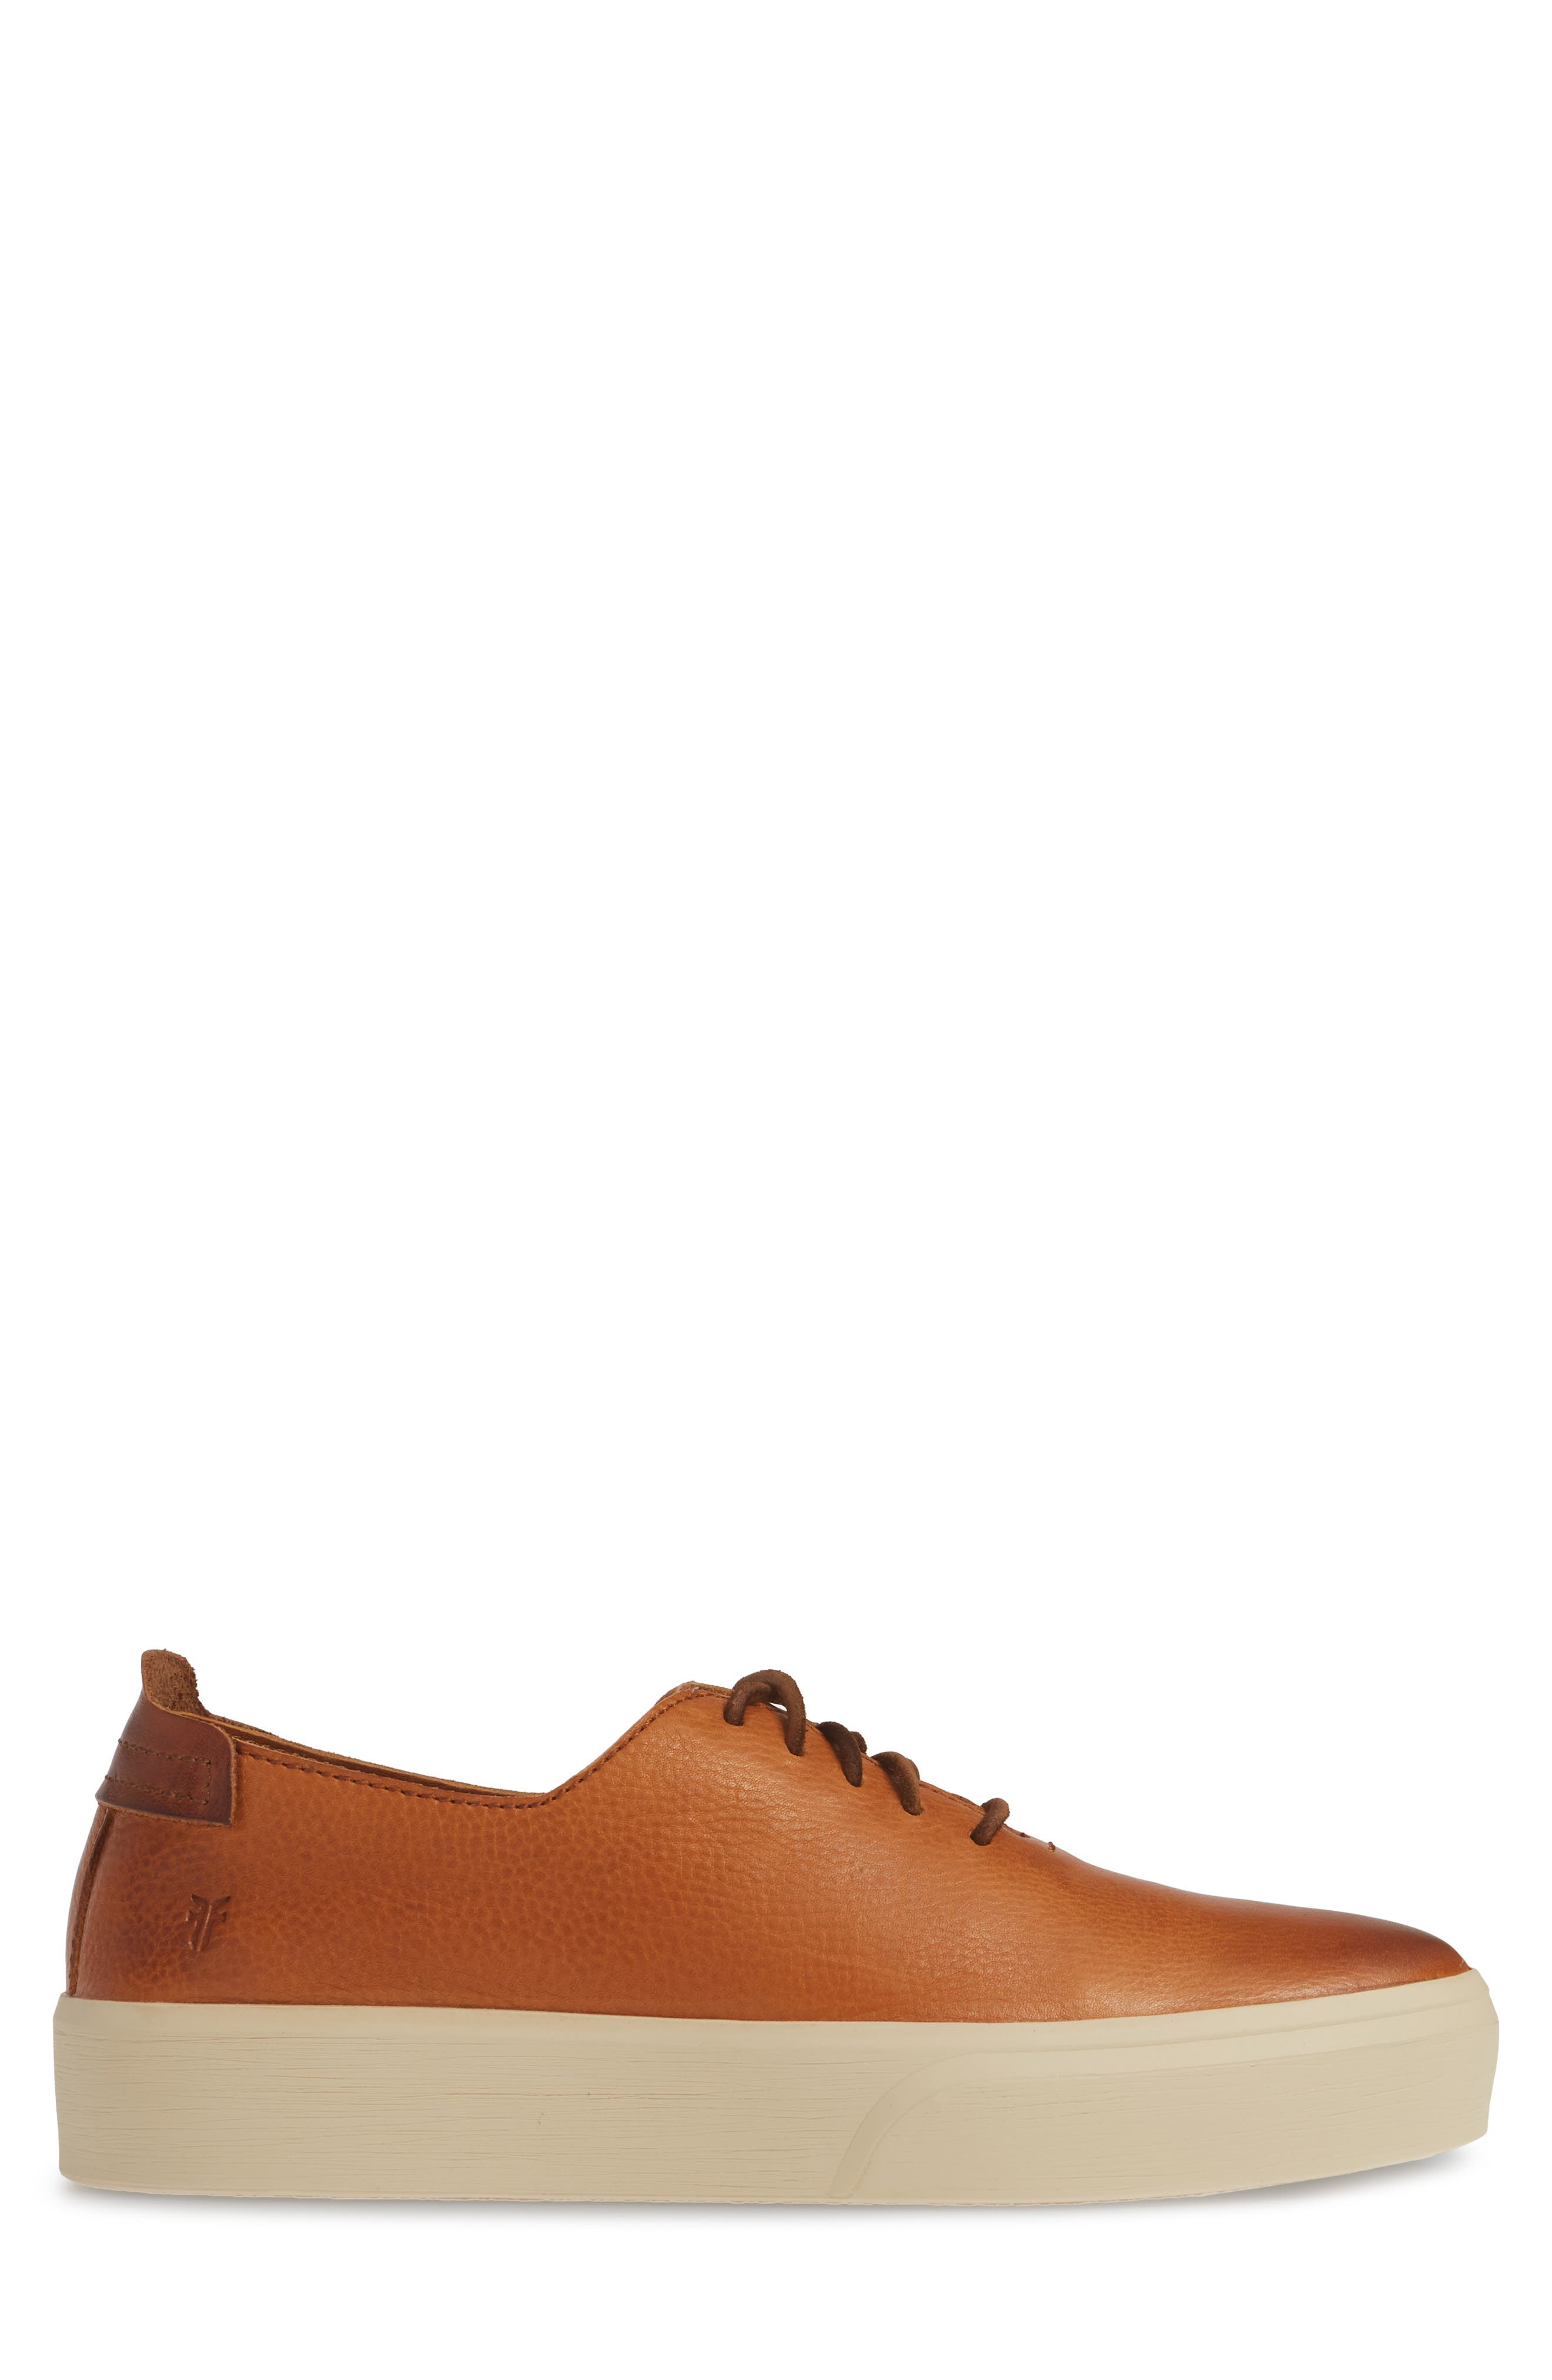 FRYE,                             Beacon Sneaker,                             Alternate thumbnail 3, color,                             CARAMEL LEATHER